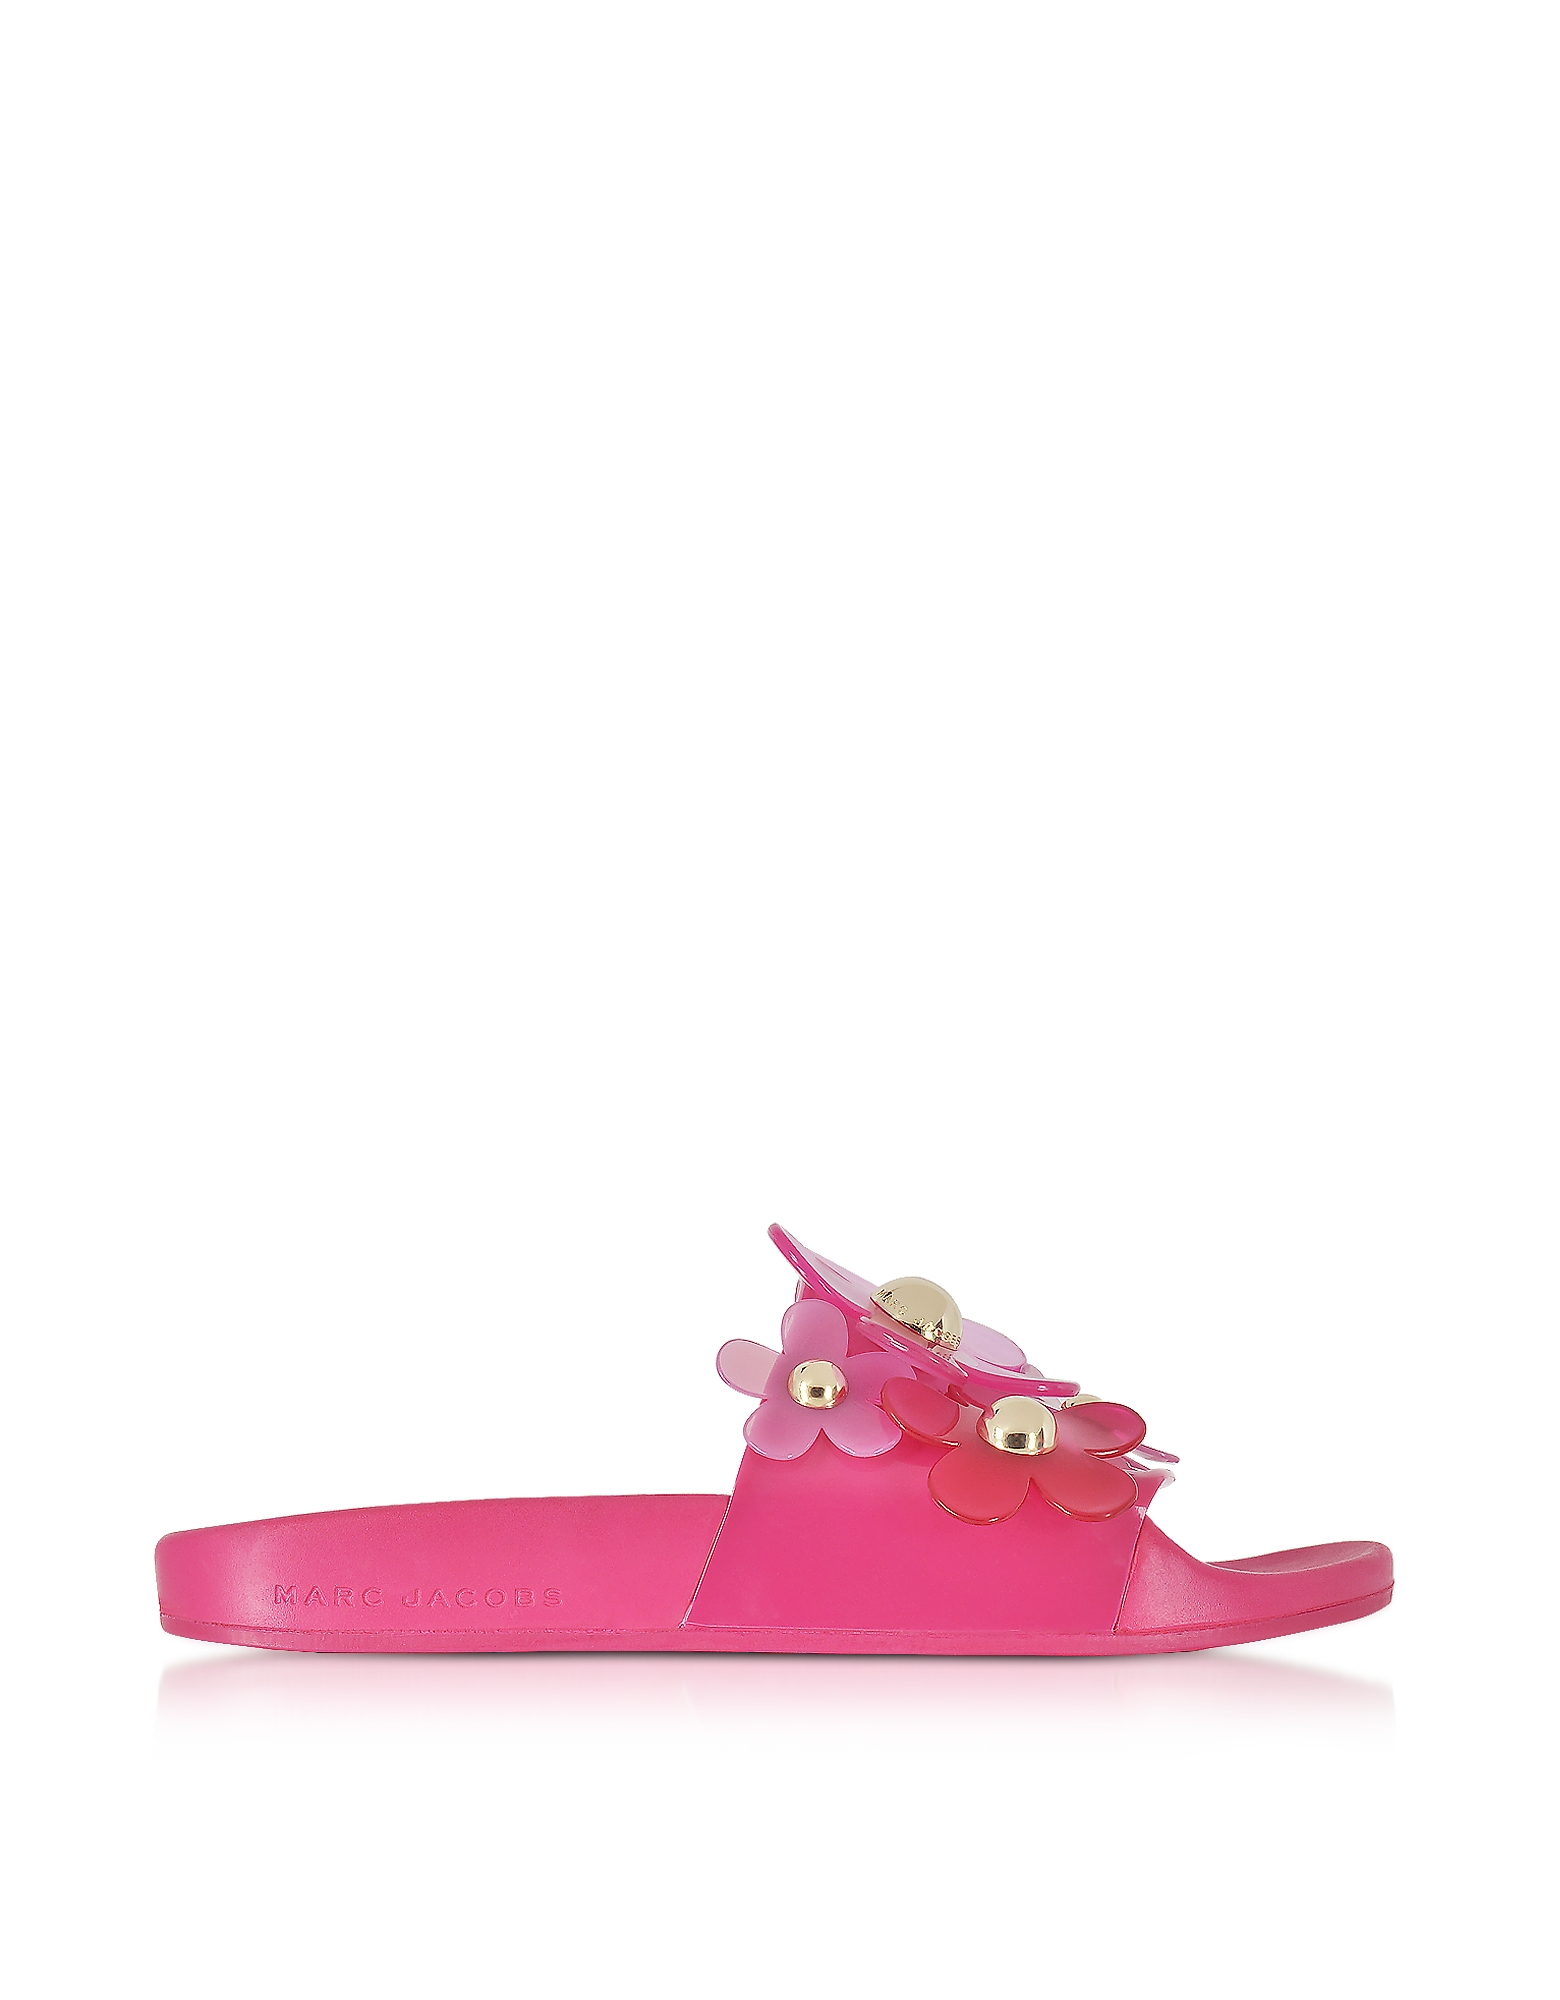 Marc Jacobs Shoes, Fuchsia Rubber Daisy Aqua Slides